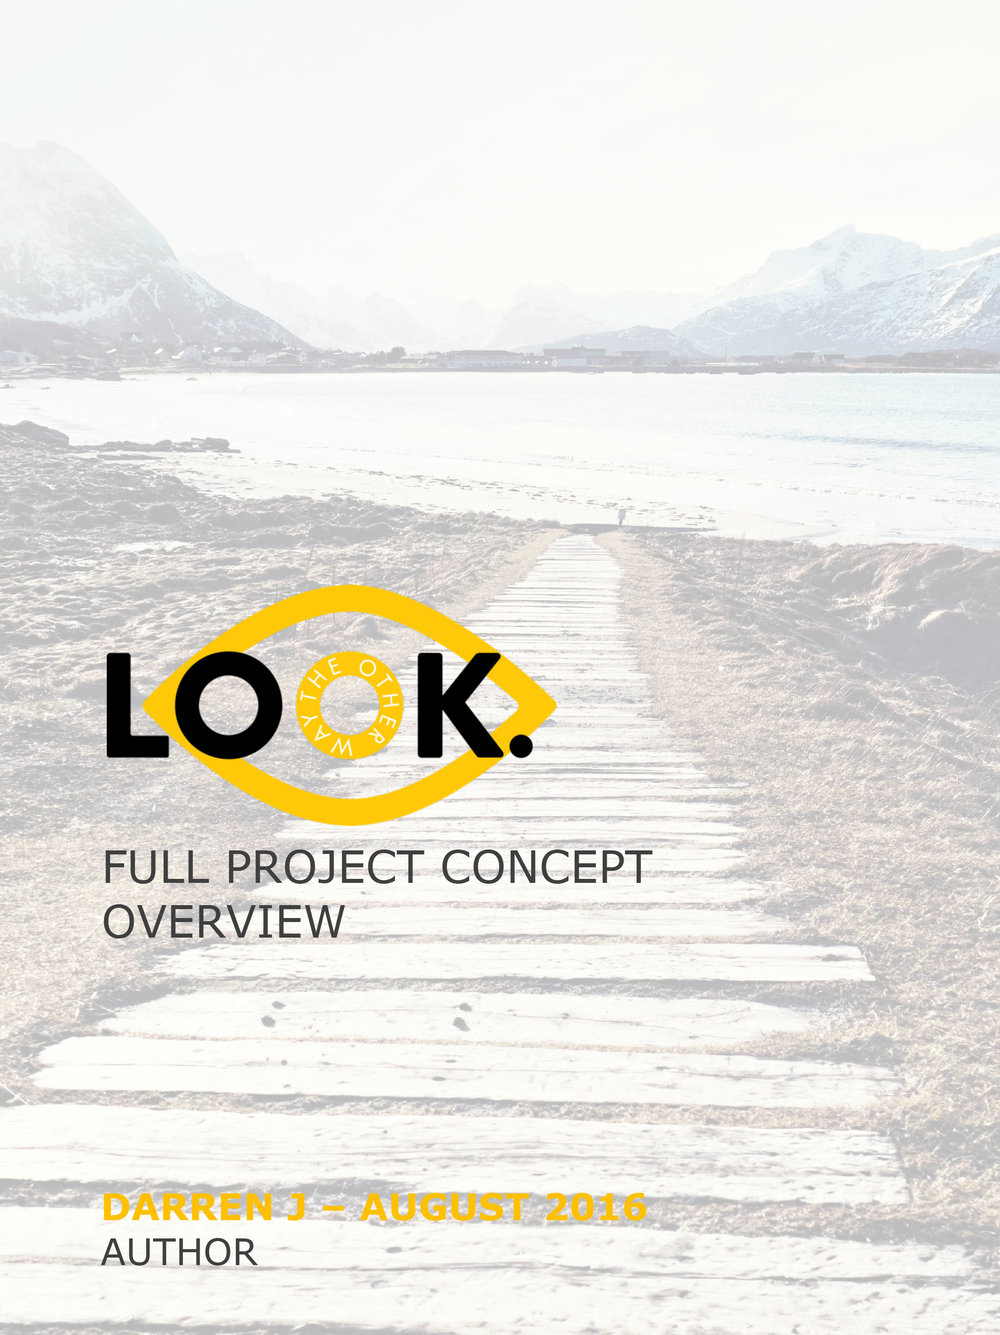 LOOK. Full Project Concept Overview - Click Image to View PDF Document